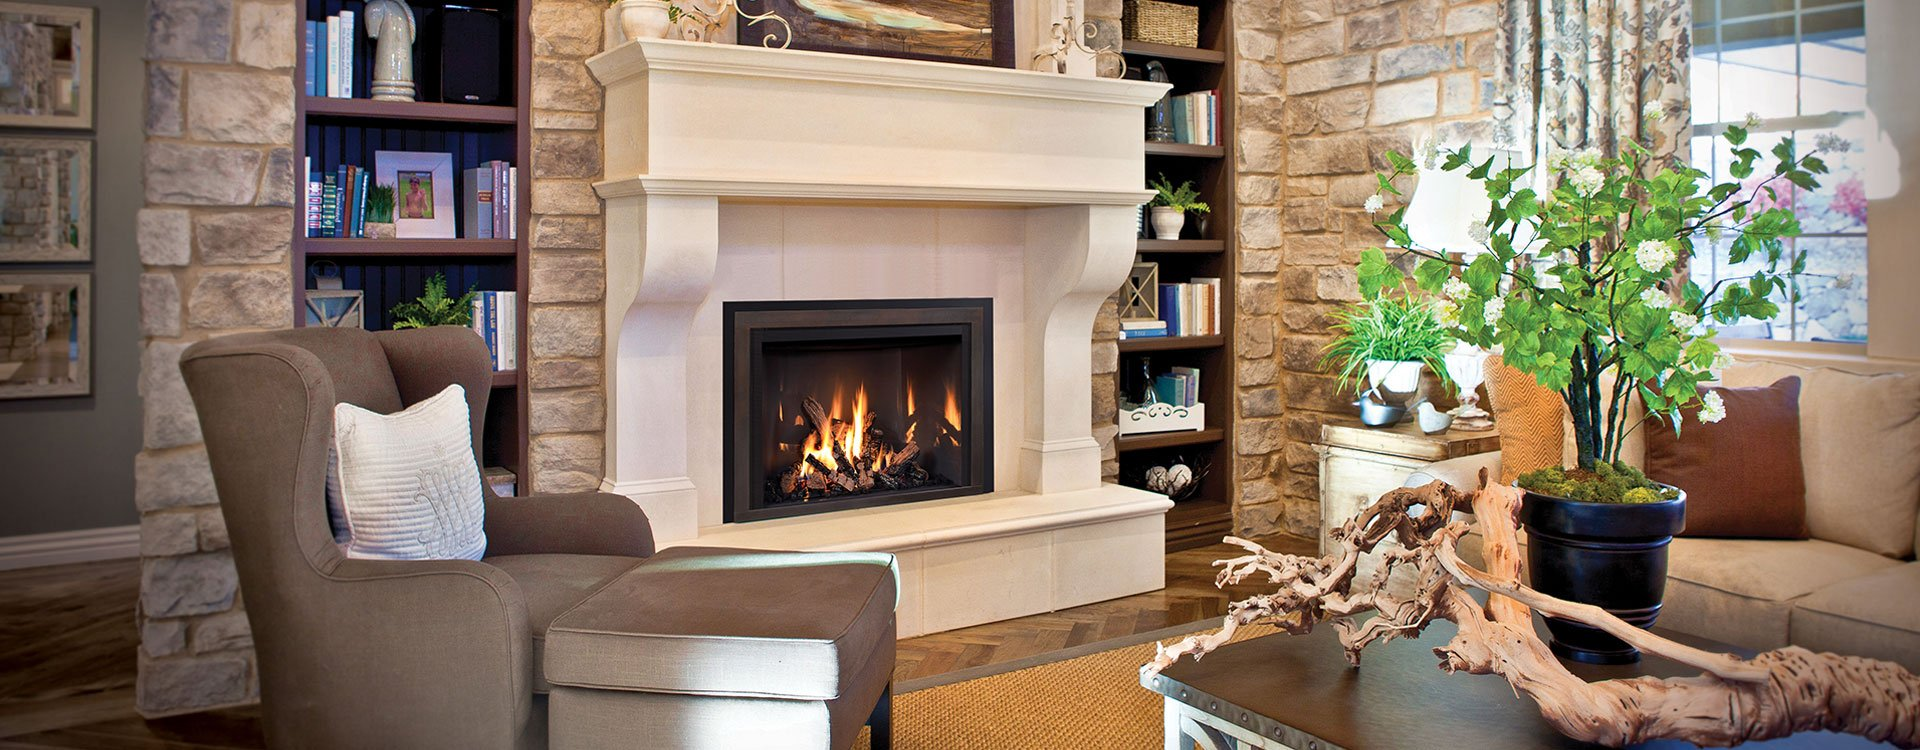 Astonishing United Brick And Fireplace In Madison Wi Download Free Architecture Designs Itiscsunscenecom